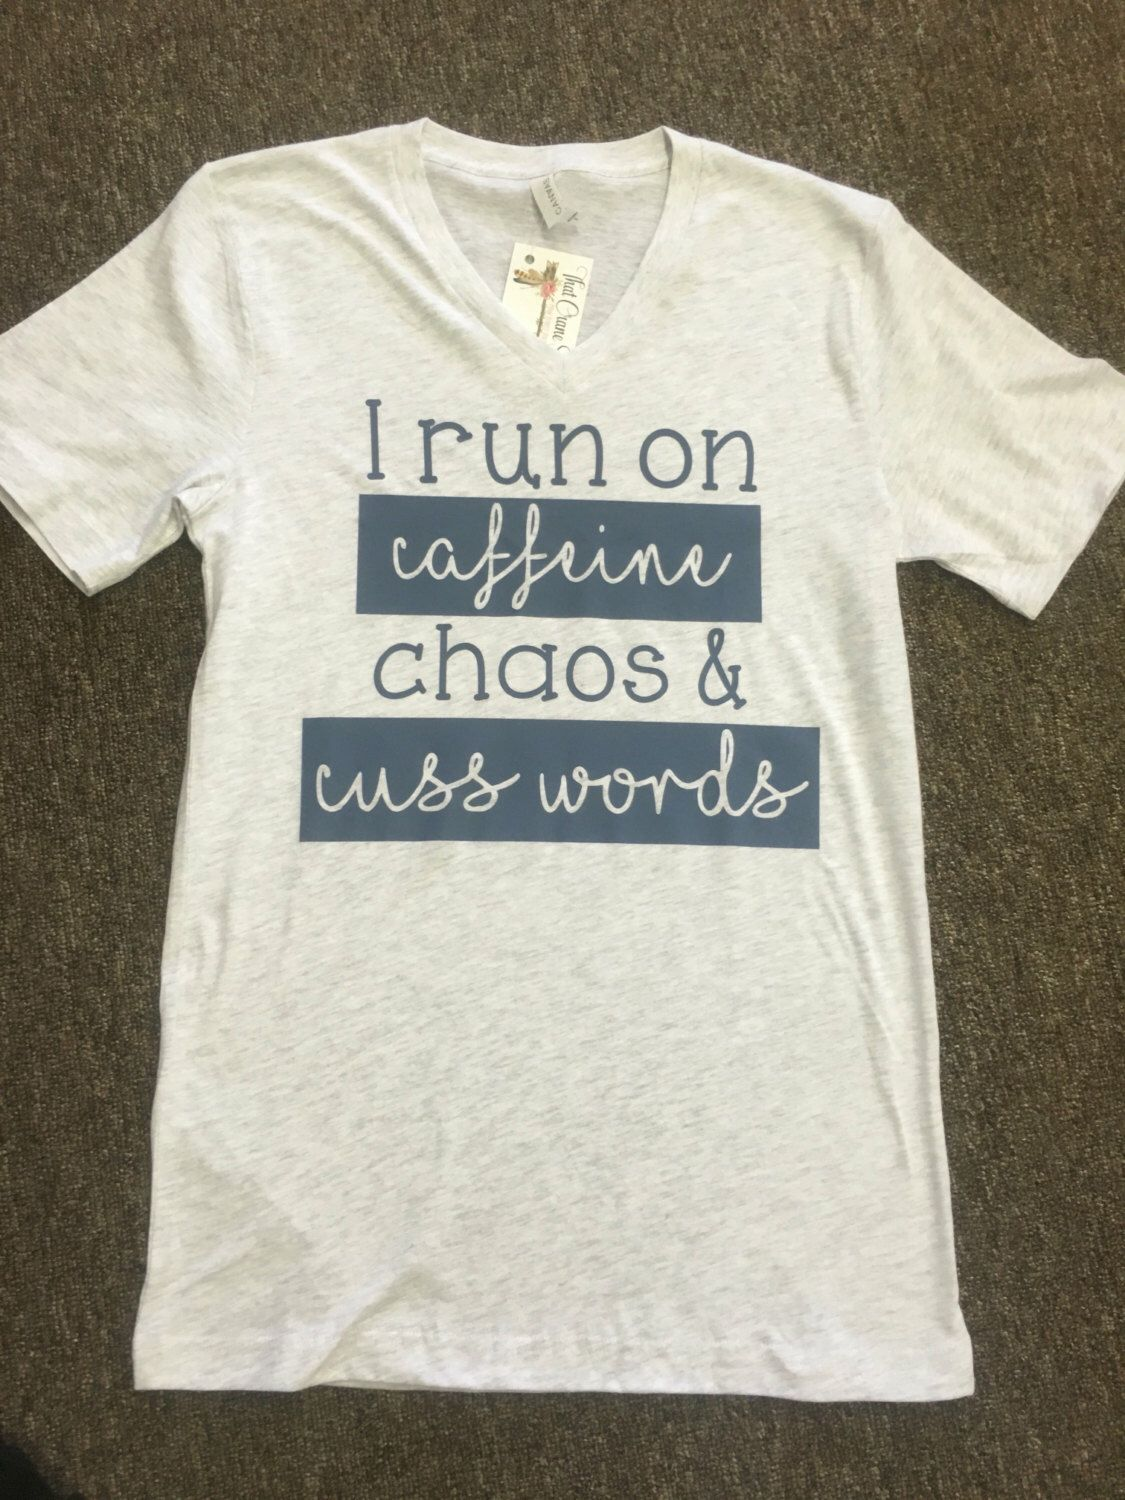 Pin by Laura Williams on t's | Mom shirts, T shirts with ...